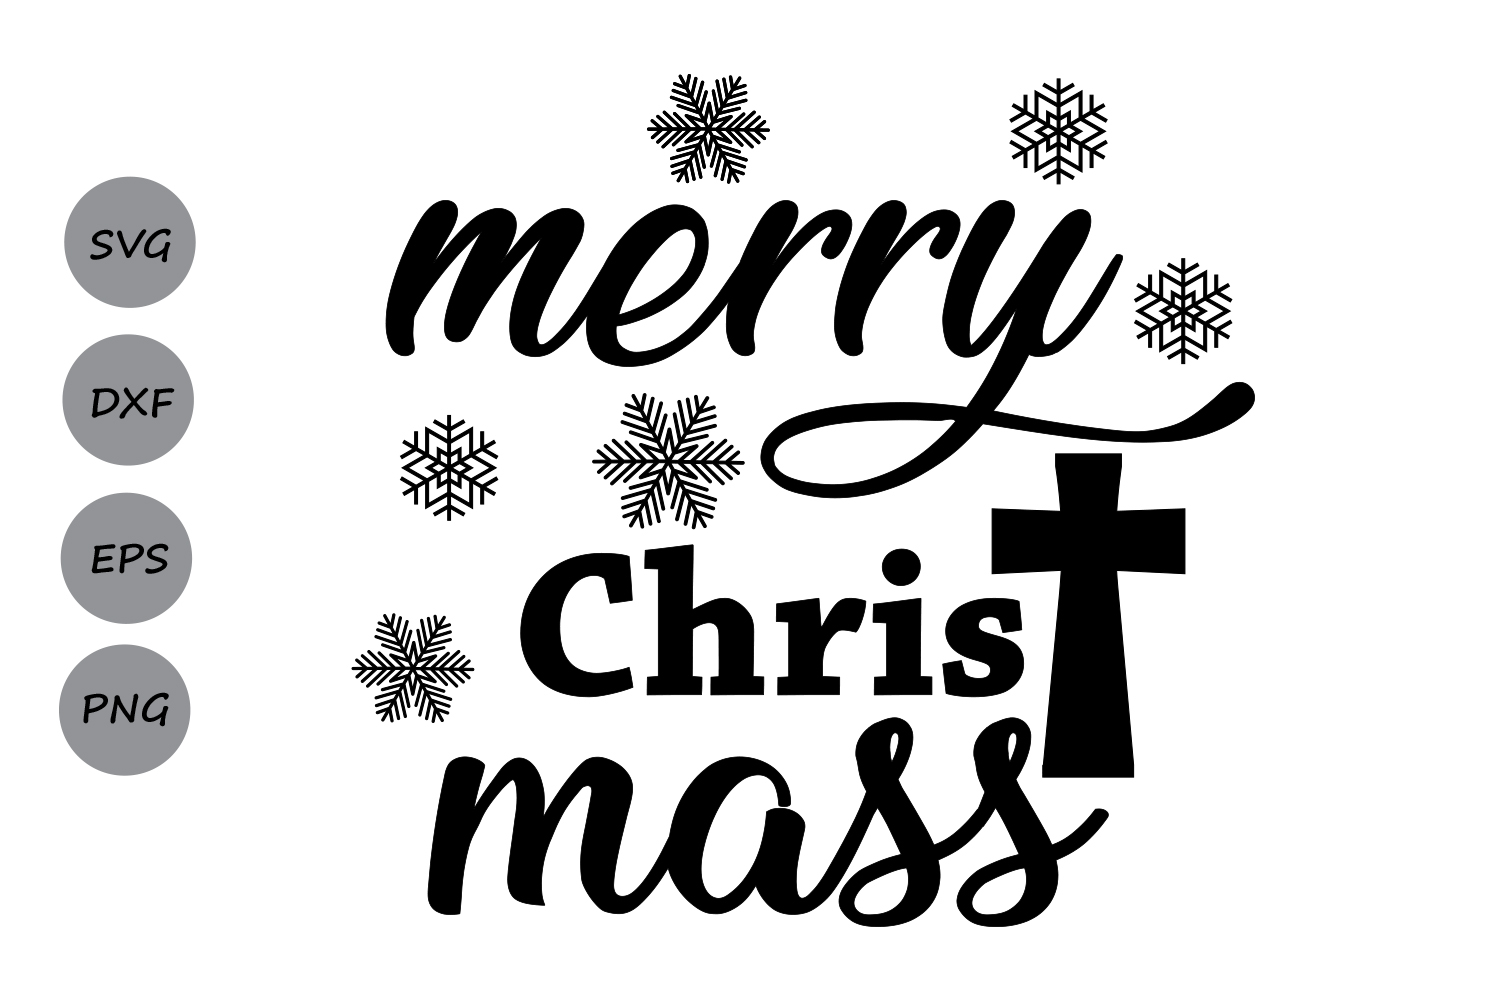 merry christmas svg holiday svg christ svg christmas - HD 1500×1000